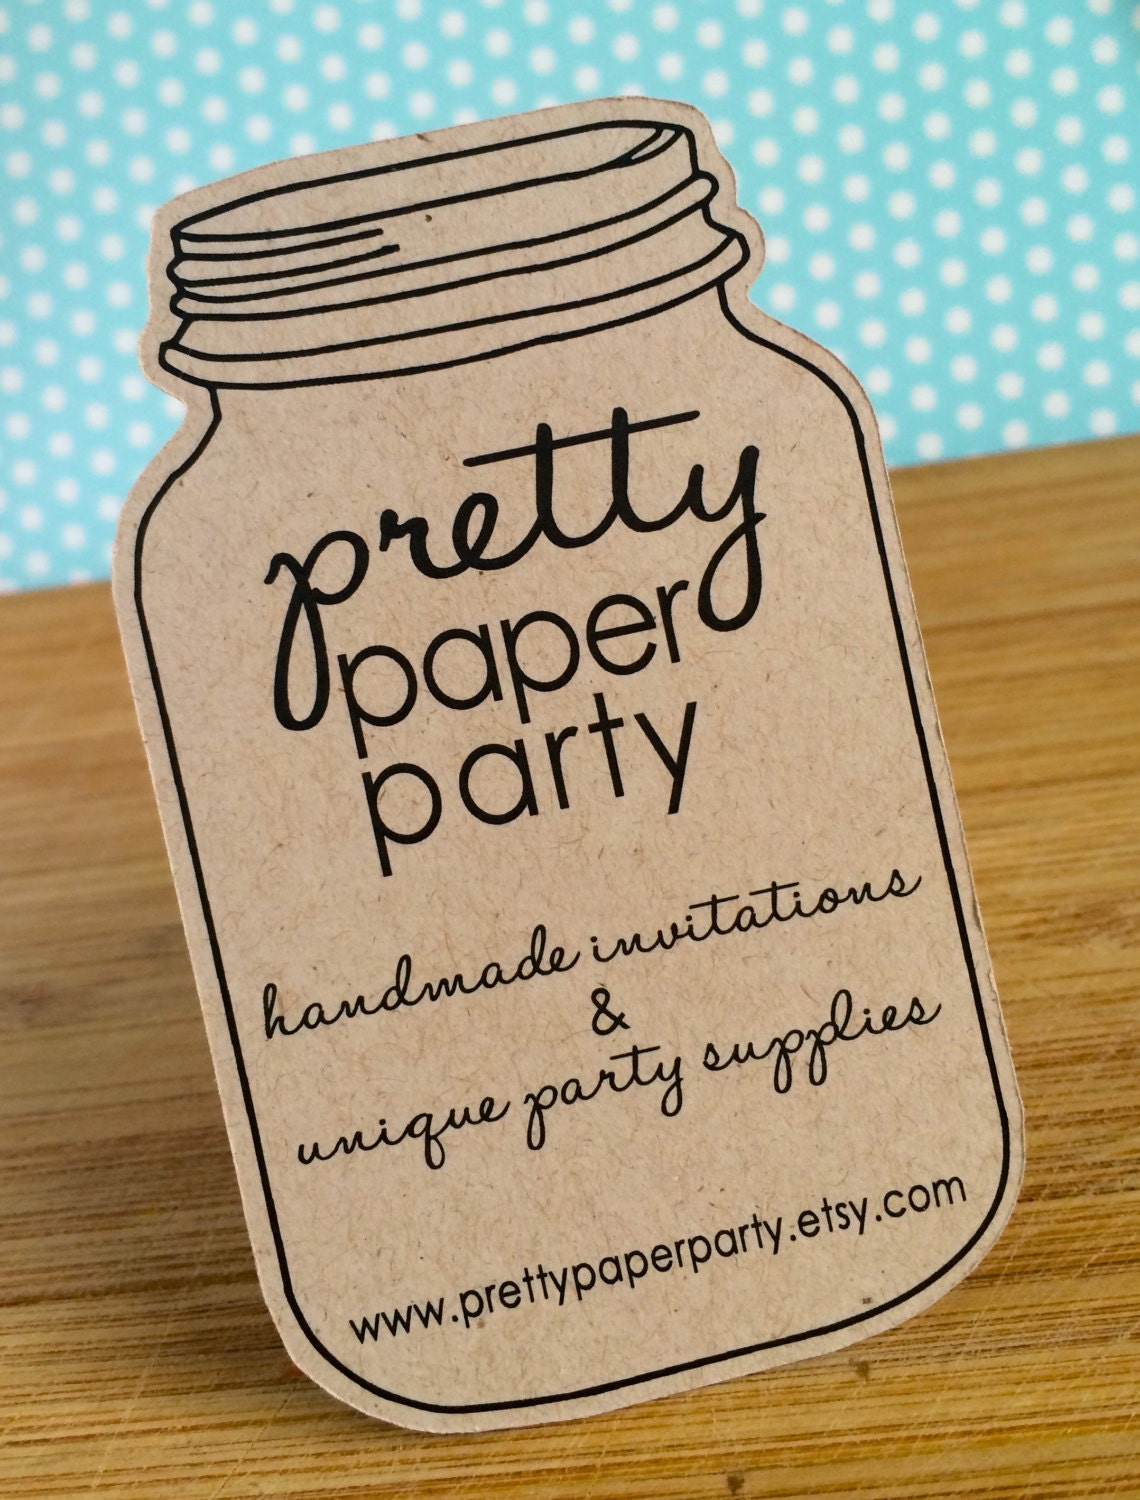 Custom Die Cut Mason Jar Business Cards Small Quantities